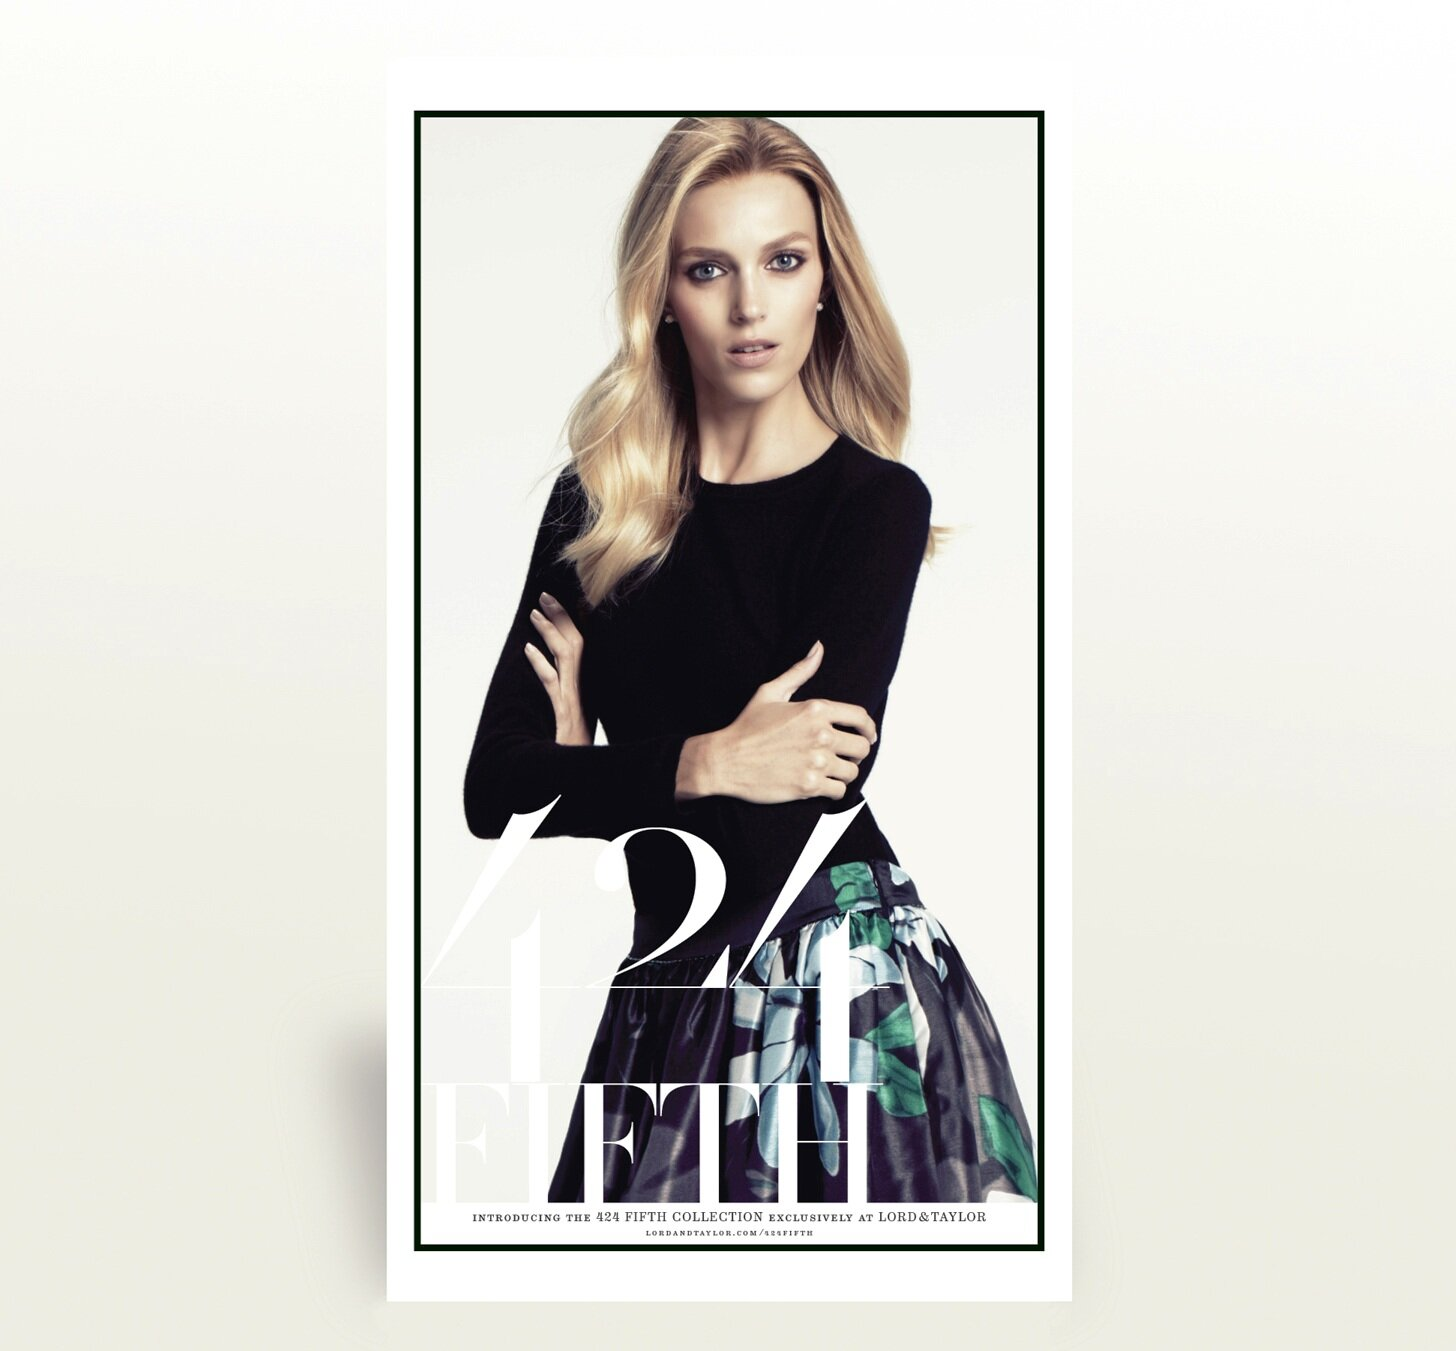 Lord & Taylor - Creative direction, team build, Brand refresh